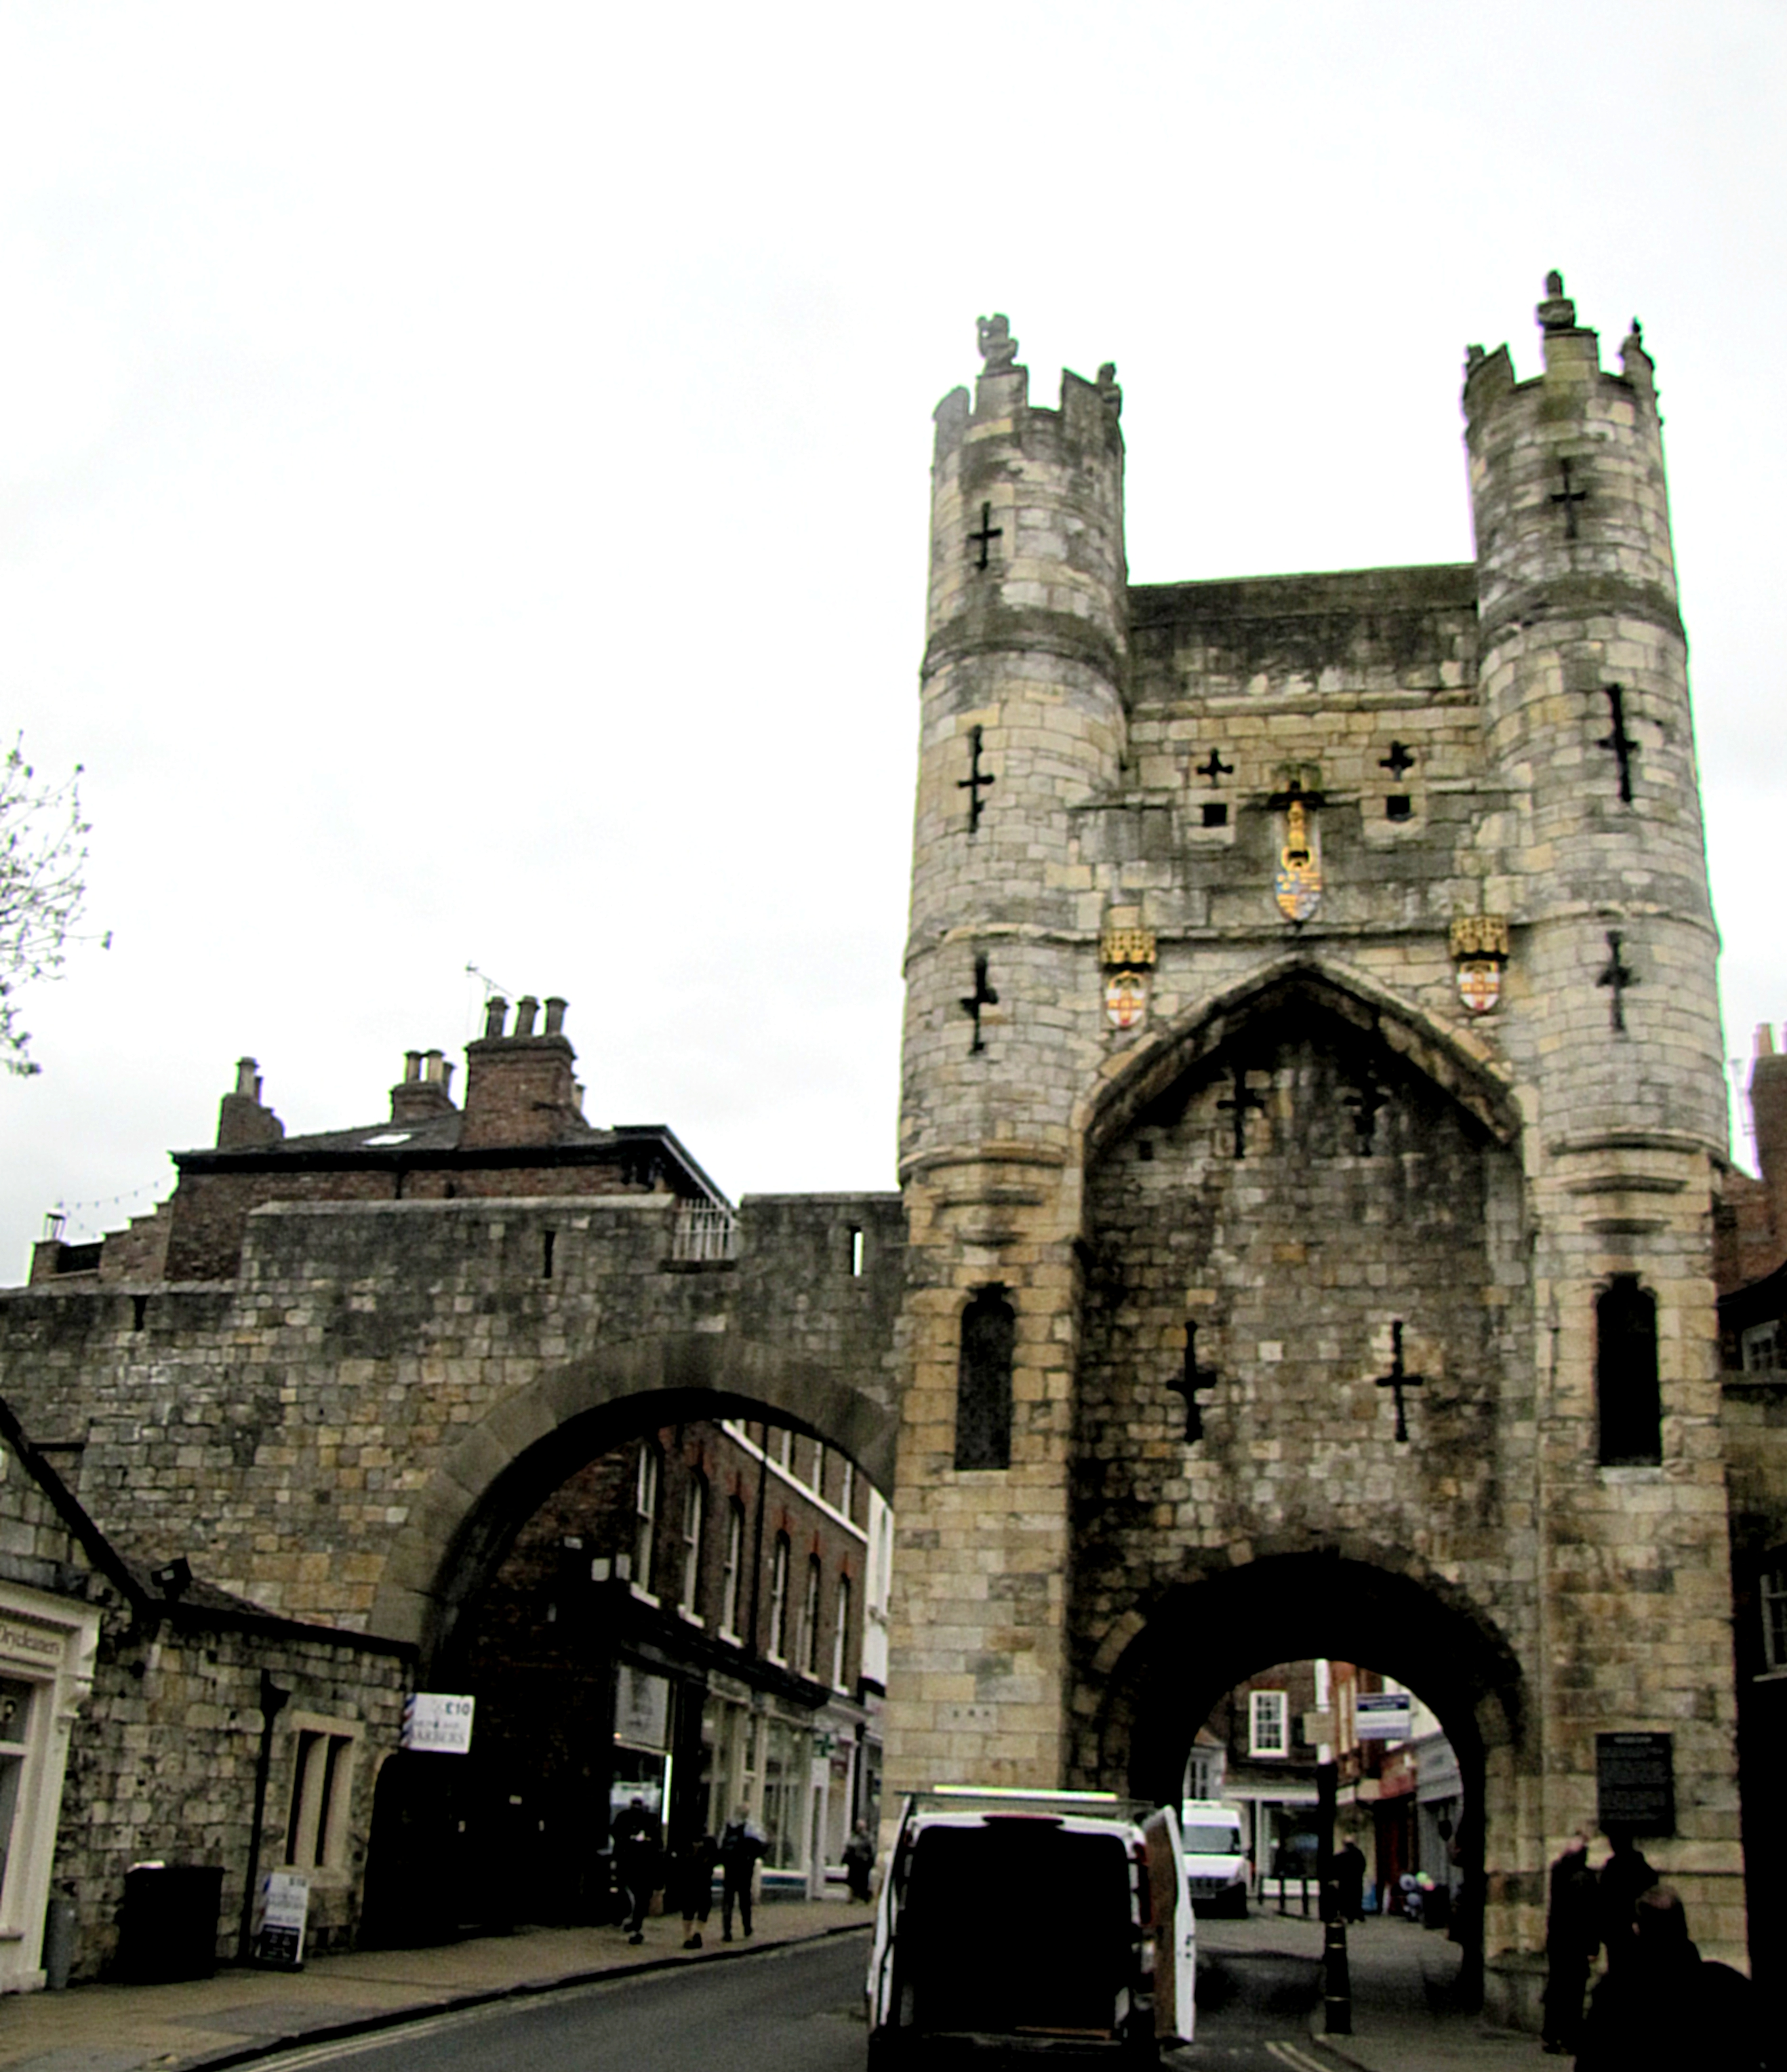 I followed the walls around to Monks Bar. The statues at the top of the towers are called the Wild Men of York, and it is said that, if York is in peril, they will come to life and toss their boulders down on attackers.